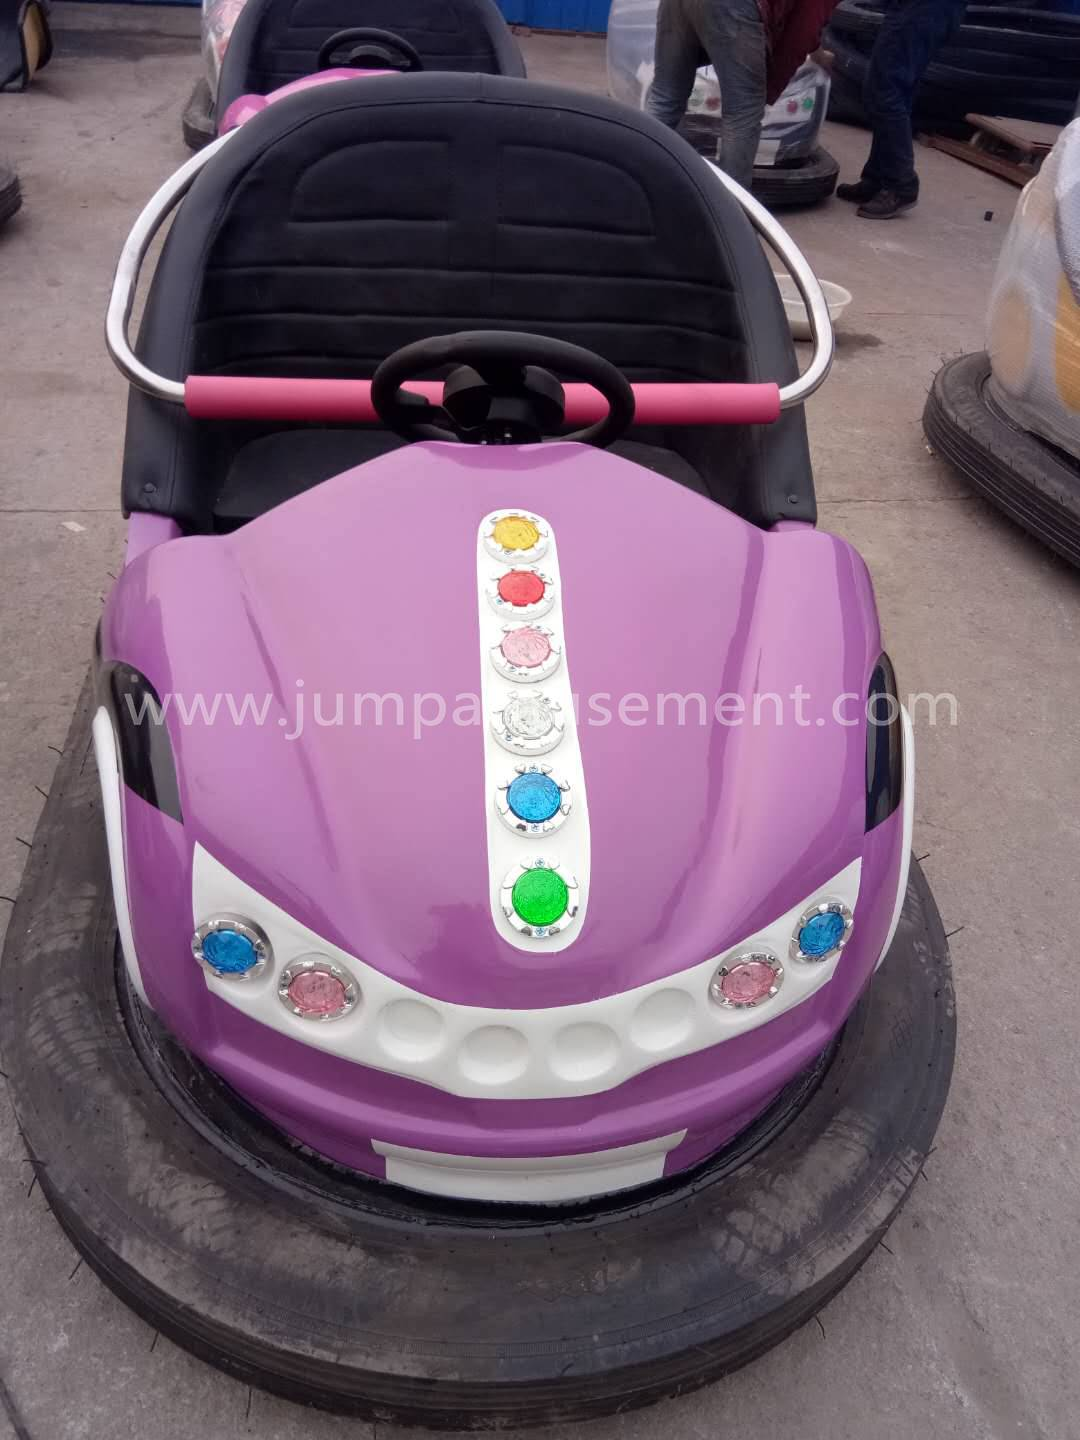 Rapid Delivery for Modern Amusement Park Rides - JP-BC05 – Jump Amusment Featured Image